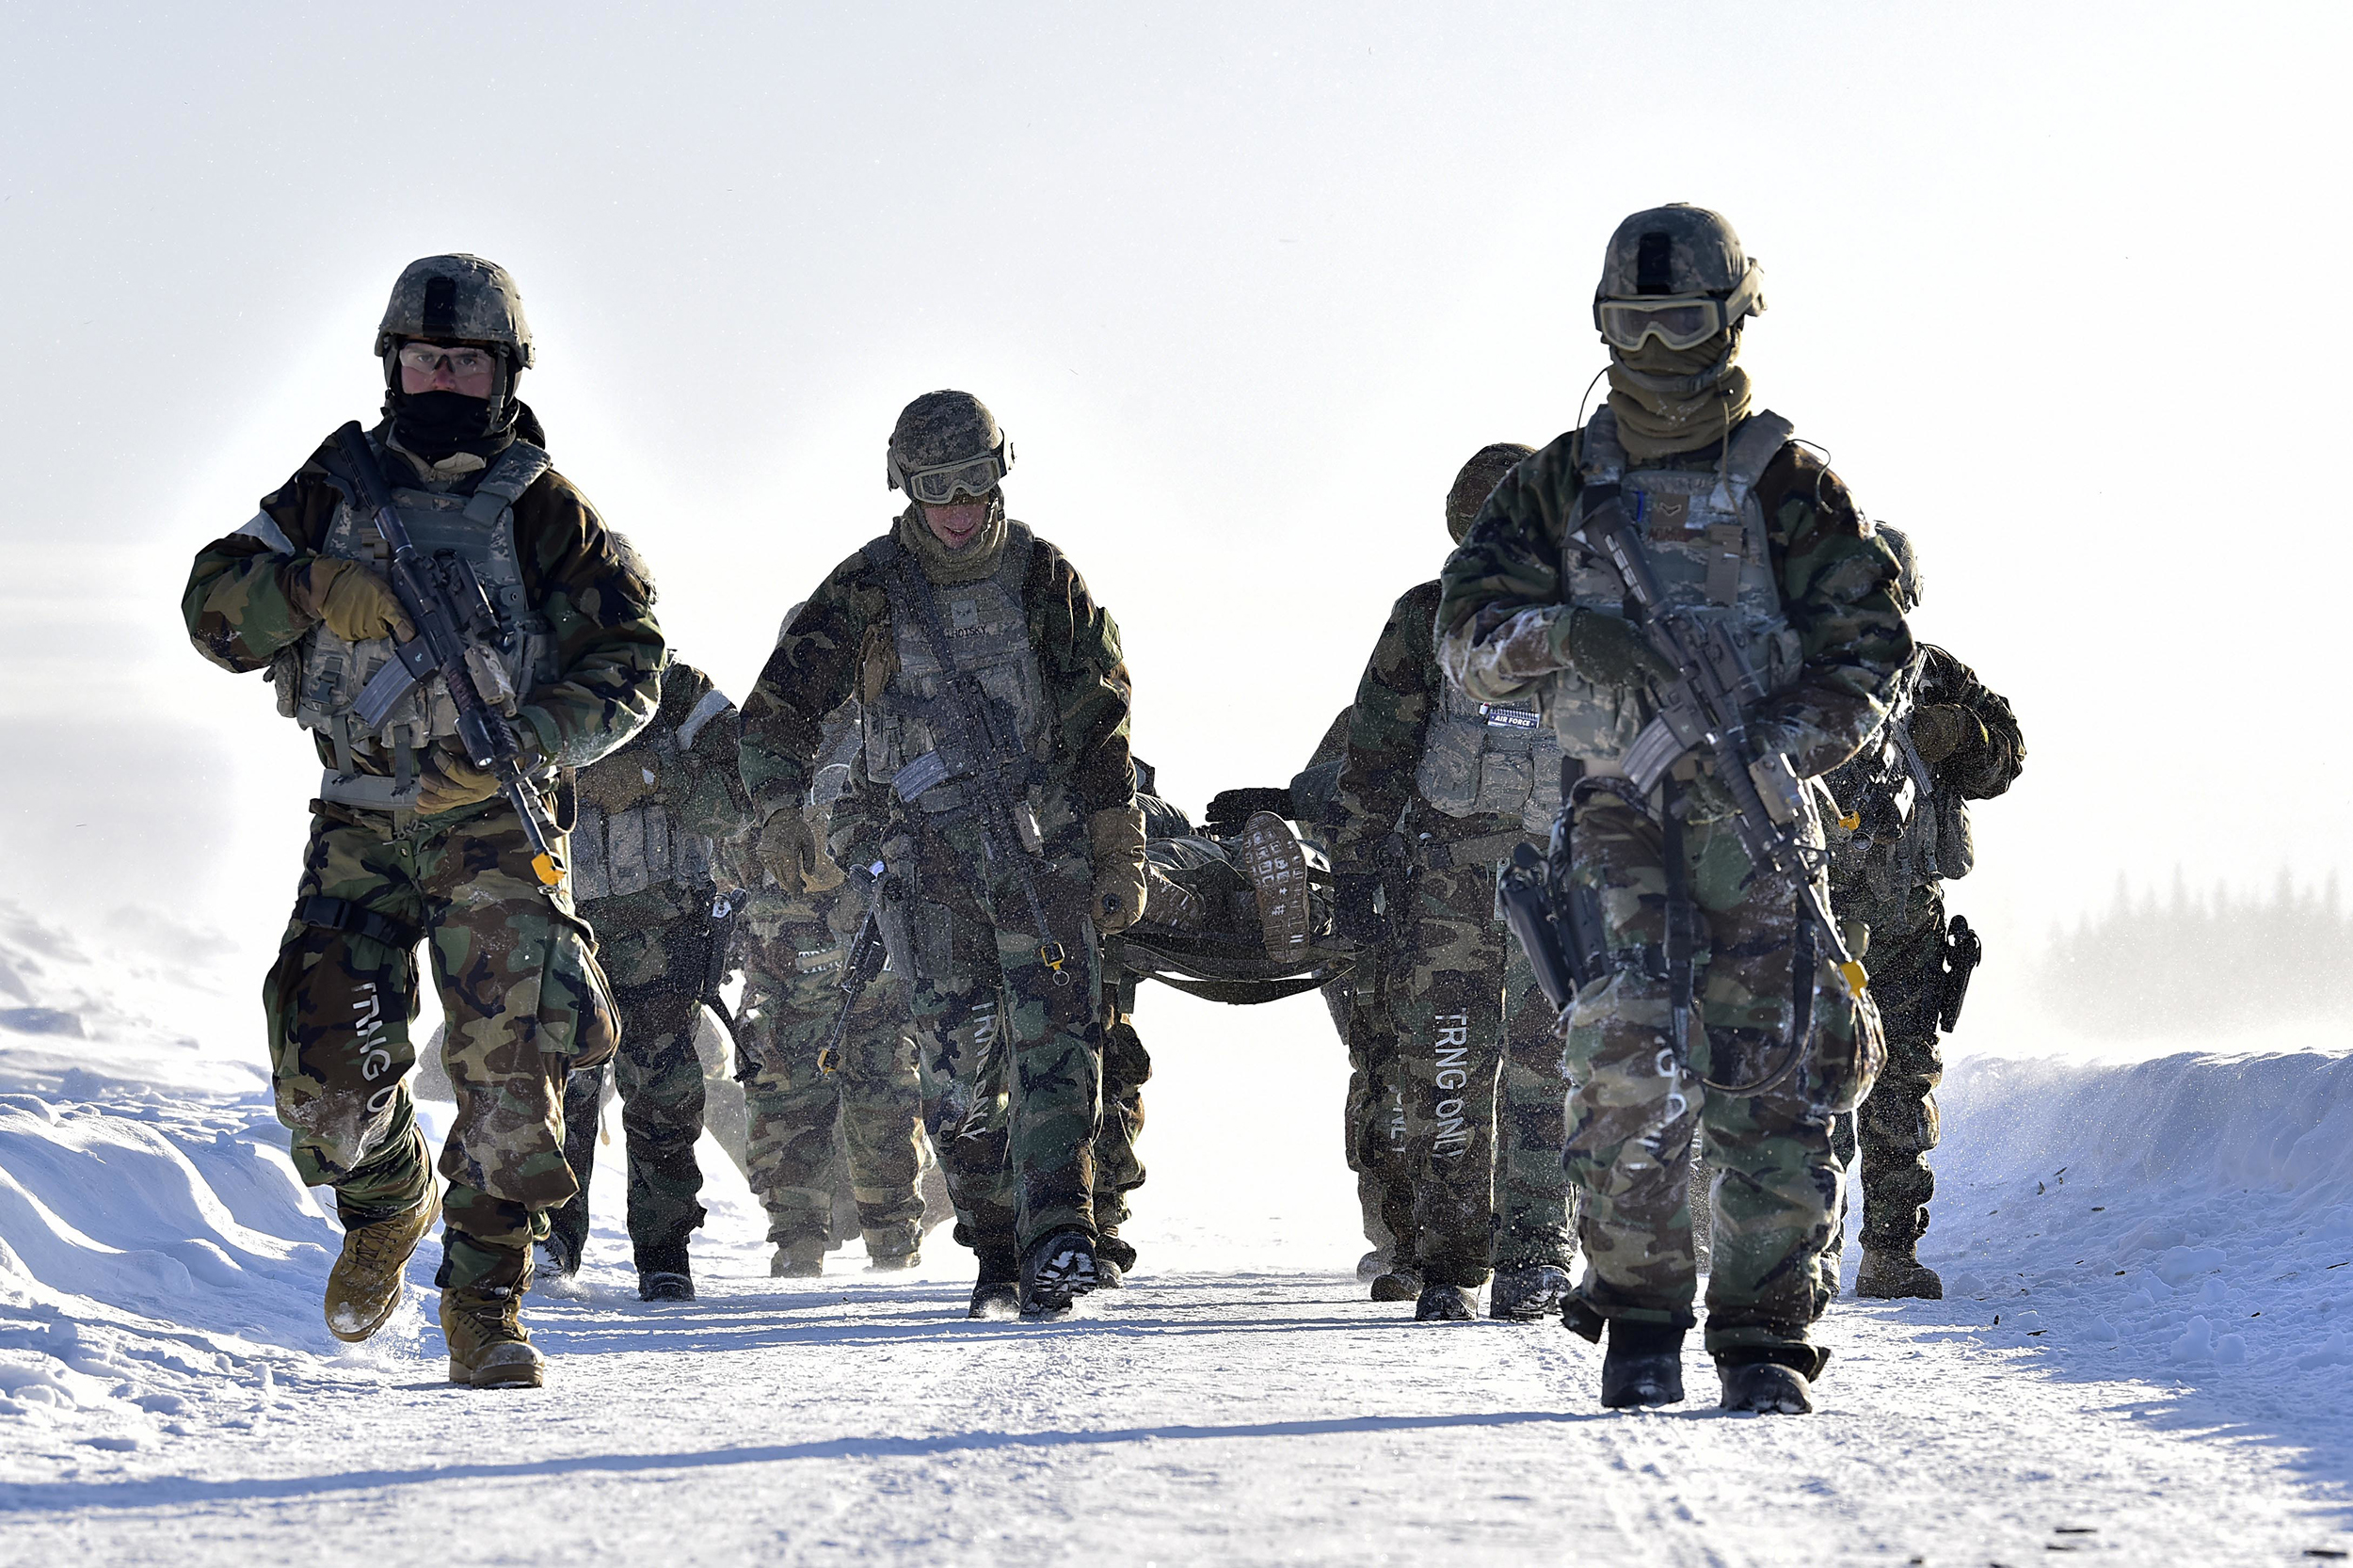 Airmen from the 354th Security Forces Squadron carry a simulated casualty during a medical evacuation exercise at Eielson Air Force Base, Alaska, Feb. 26, 2020. (Senior Airman Beaux Hebert/Air Force)